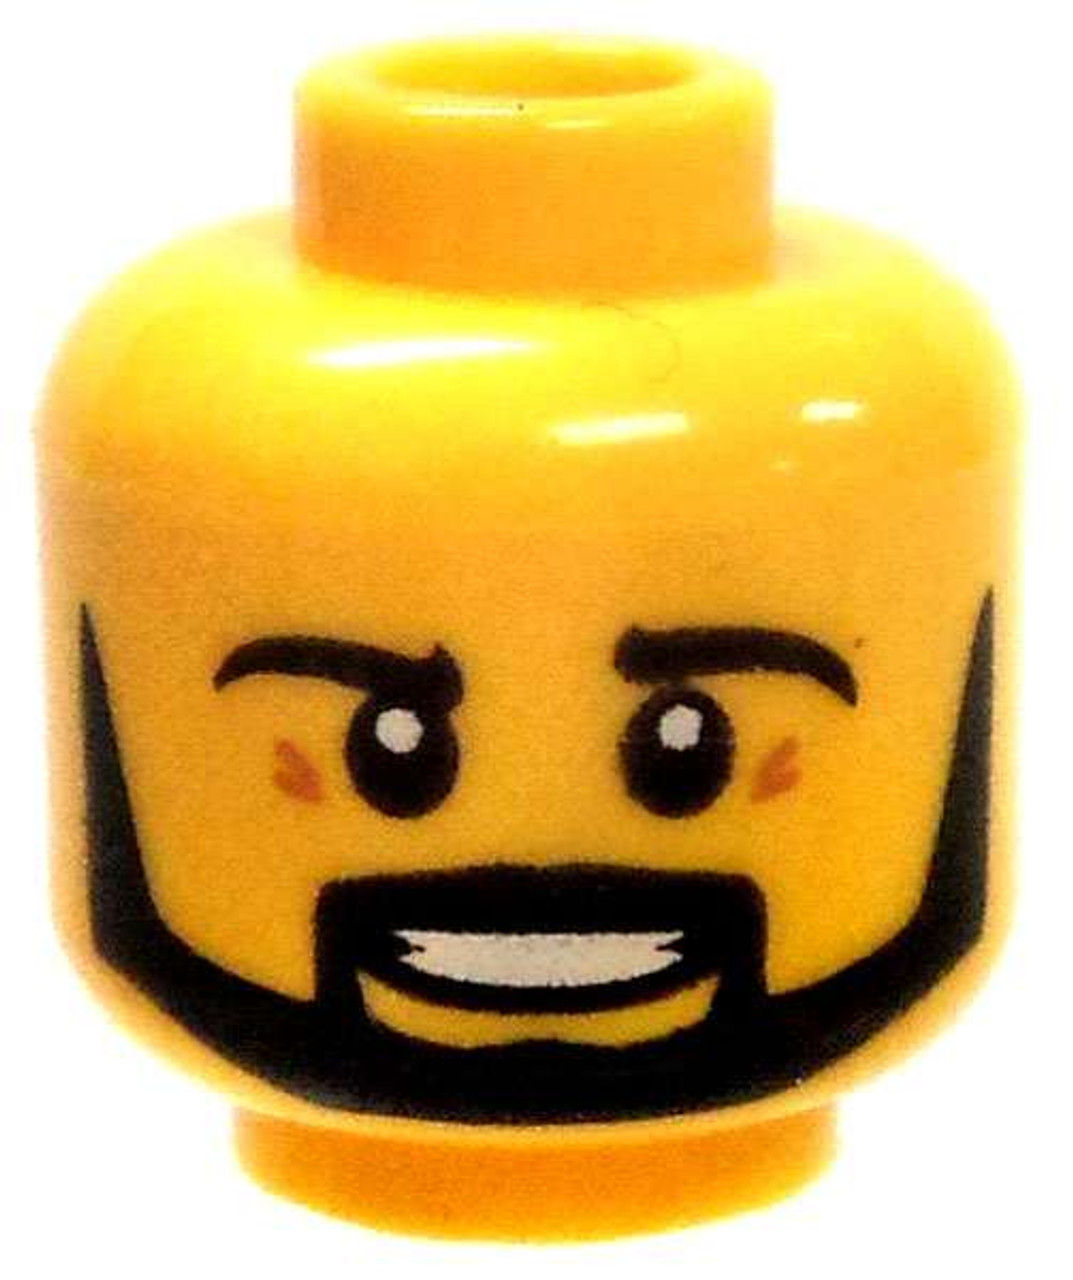 Lego New Yellow Minifigure Head Dual Sided Black Thick Eyebrows and Stubble